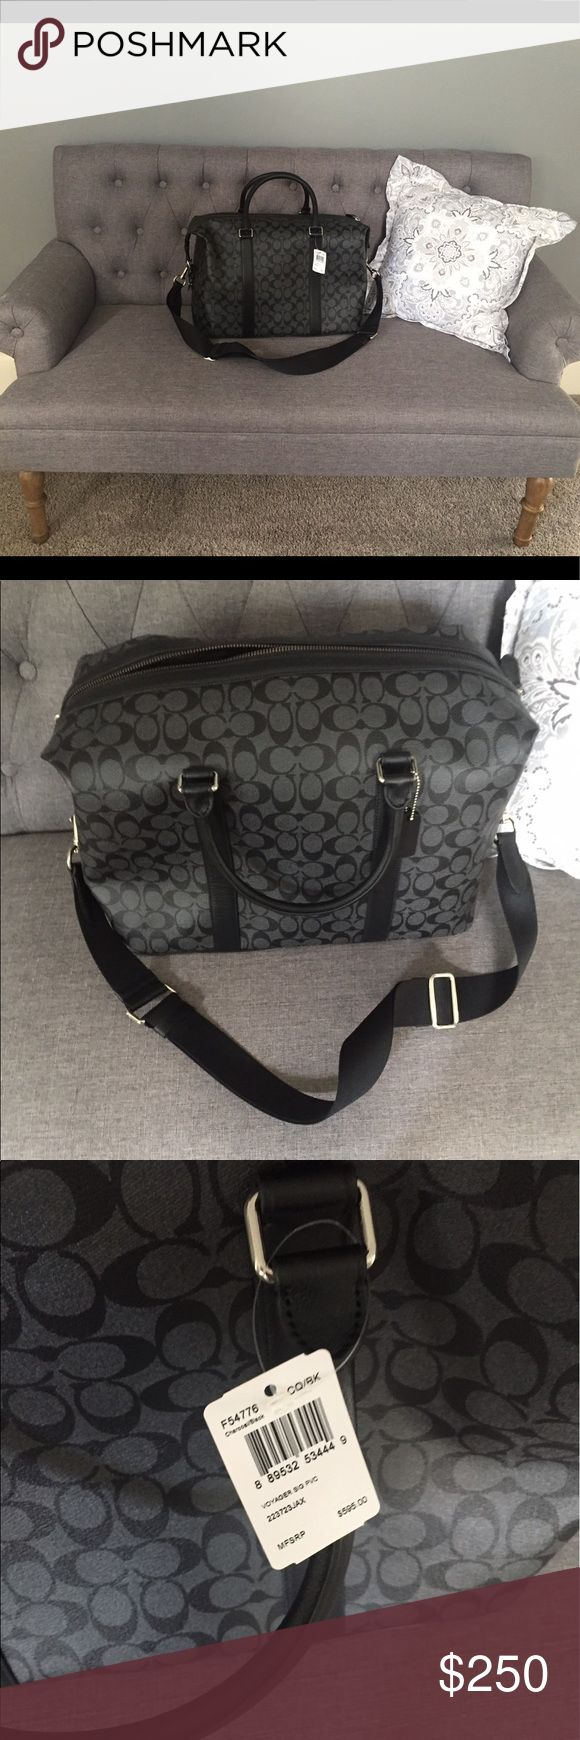 Authentic COACH duffle bag! Authentic COACH duffle that MSRP's at $595! Selling for $250 FIRM! Coach Bags Duffel Bags